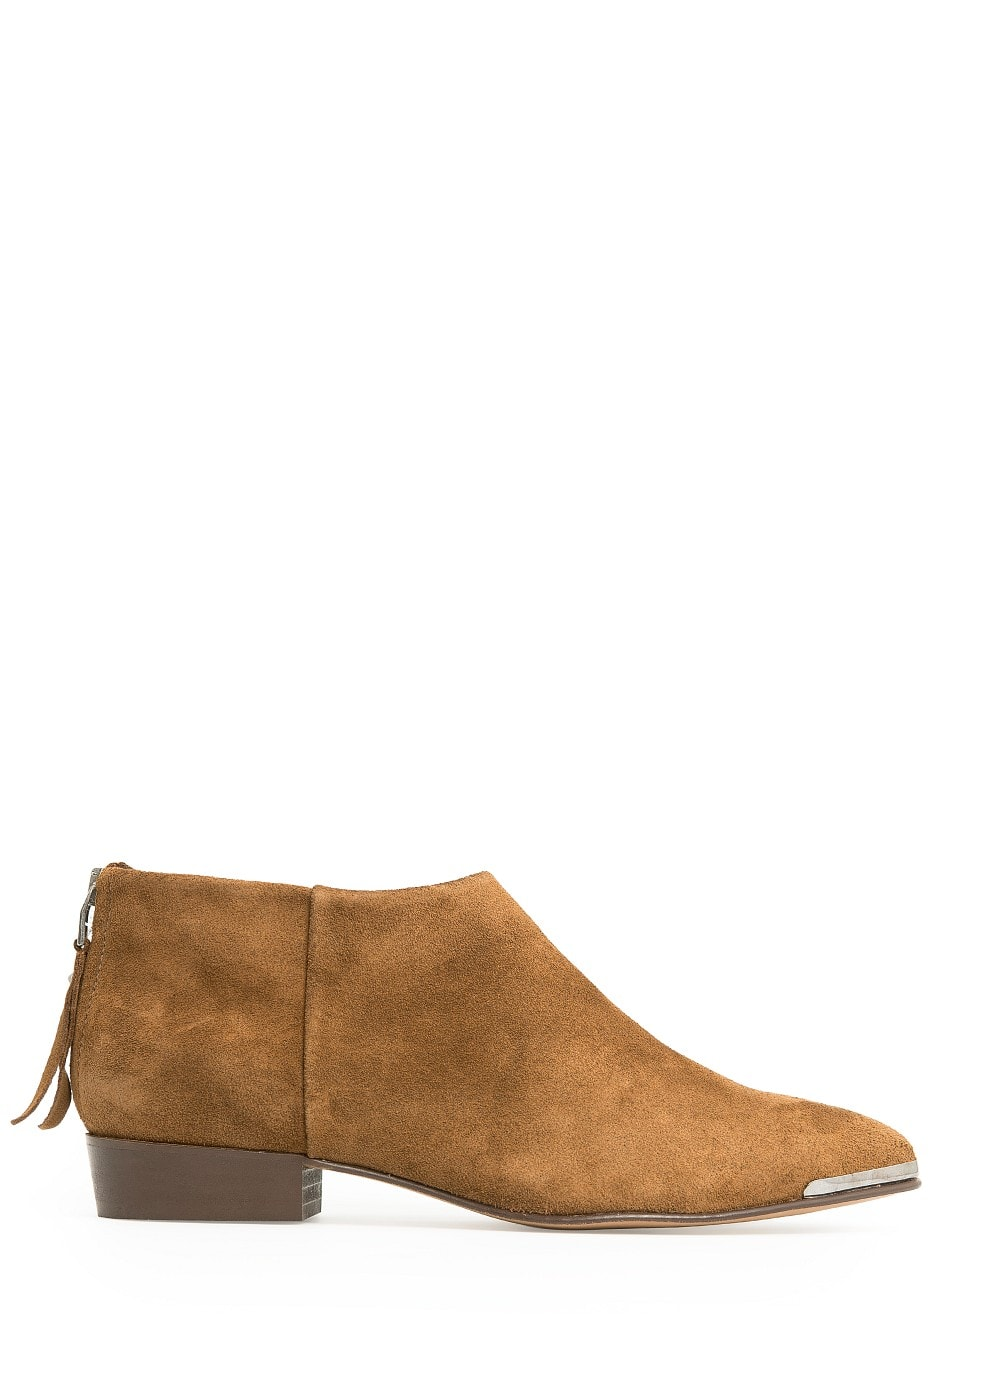 METAL DETAIL SUEDE ANKLE BOOTS